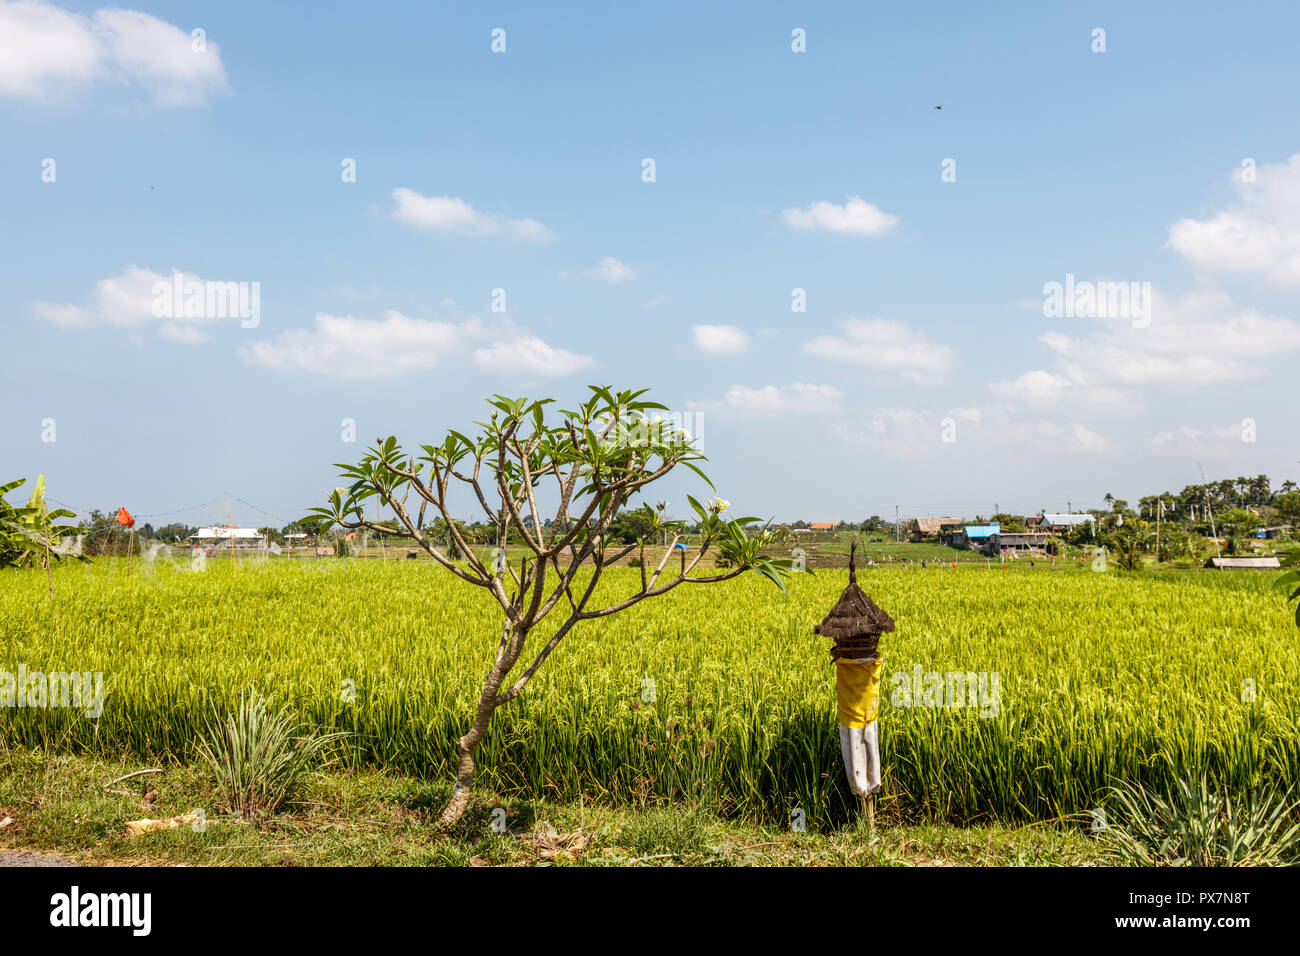 Rice field with reed thatched altar for offerings to Dewi Sri, Balinese Rice Mother. Rural landscape. Bali Island, Indonesia - Stock Image